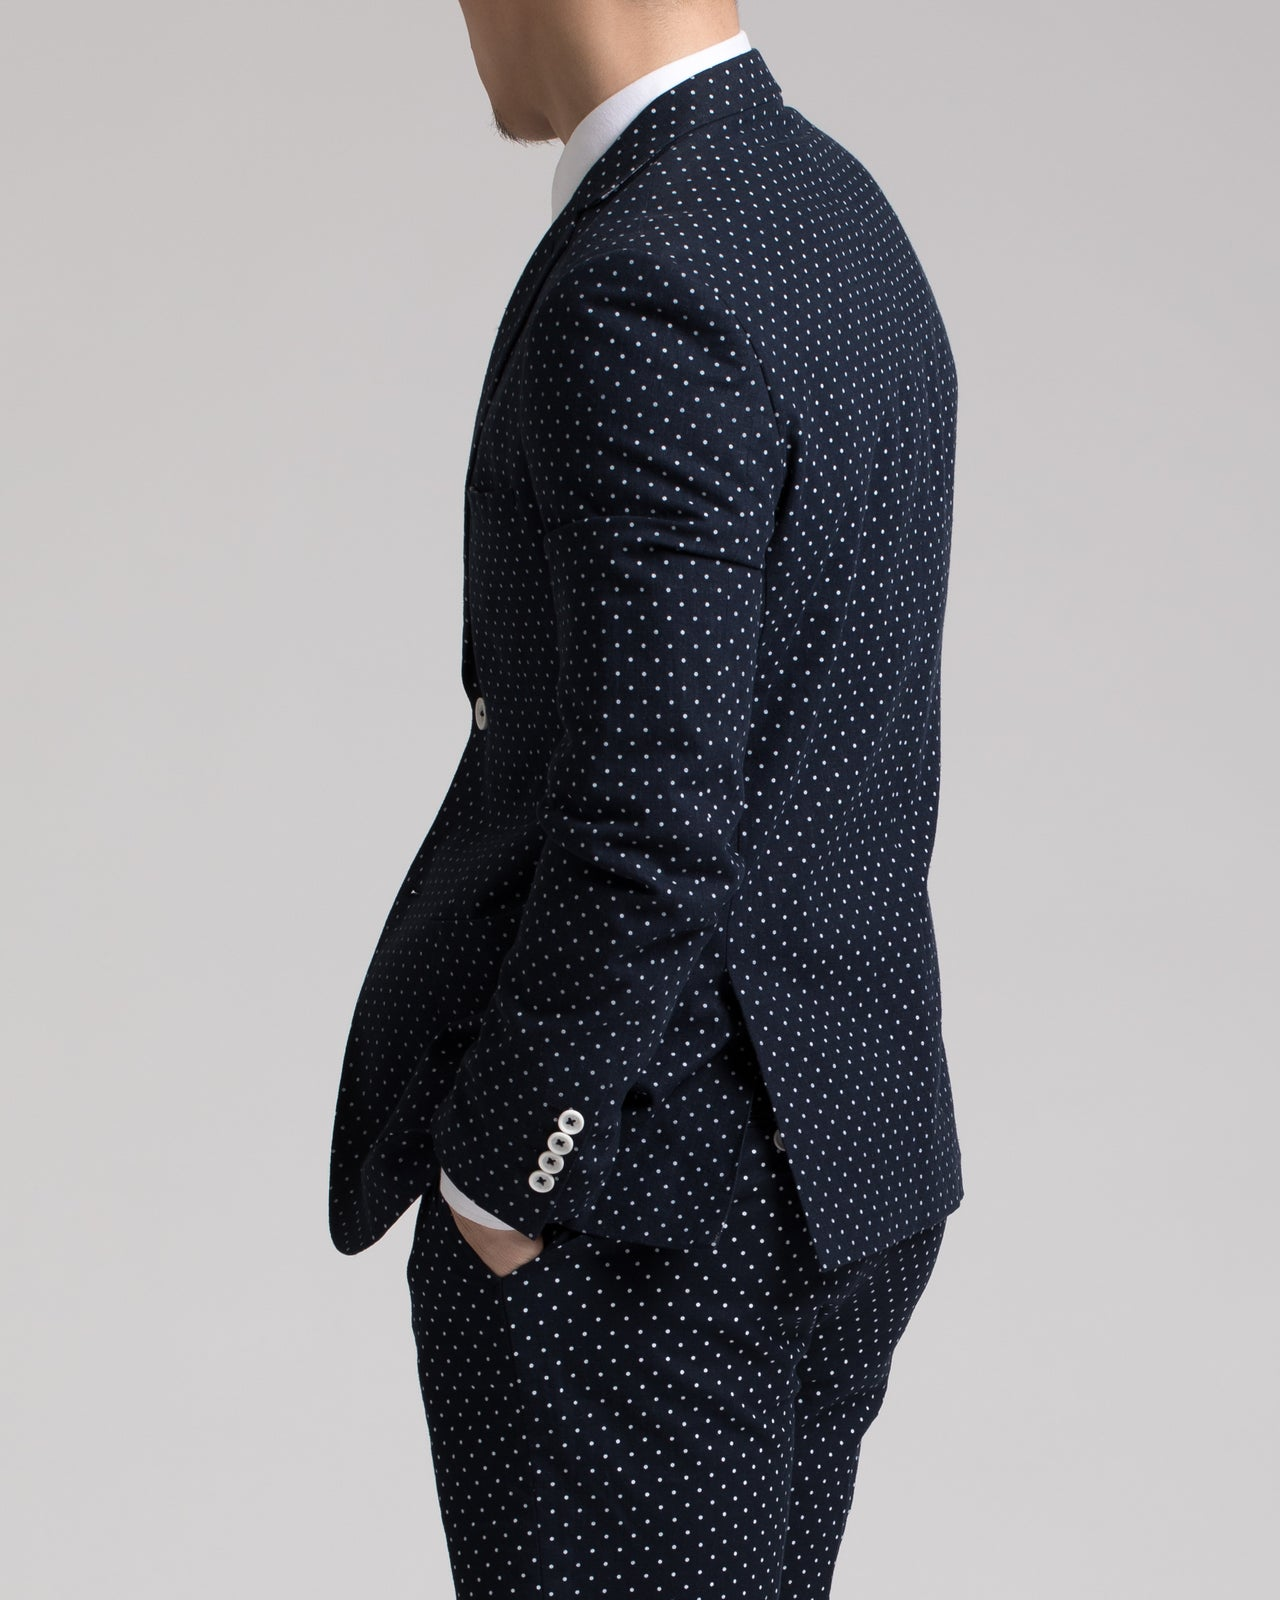 Dover Notch Jacket - Color: Navy & White Polkadot | Blue